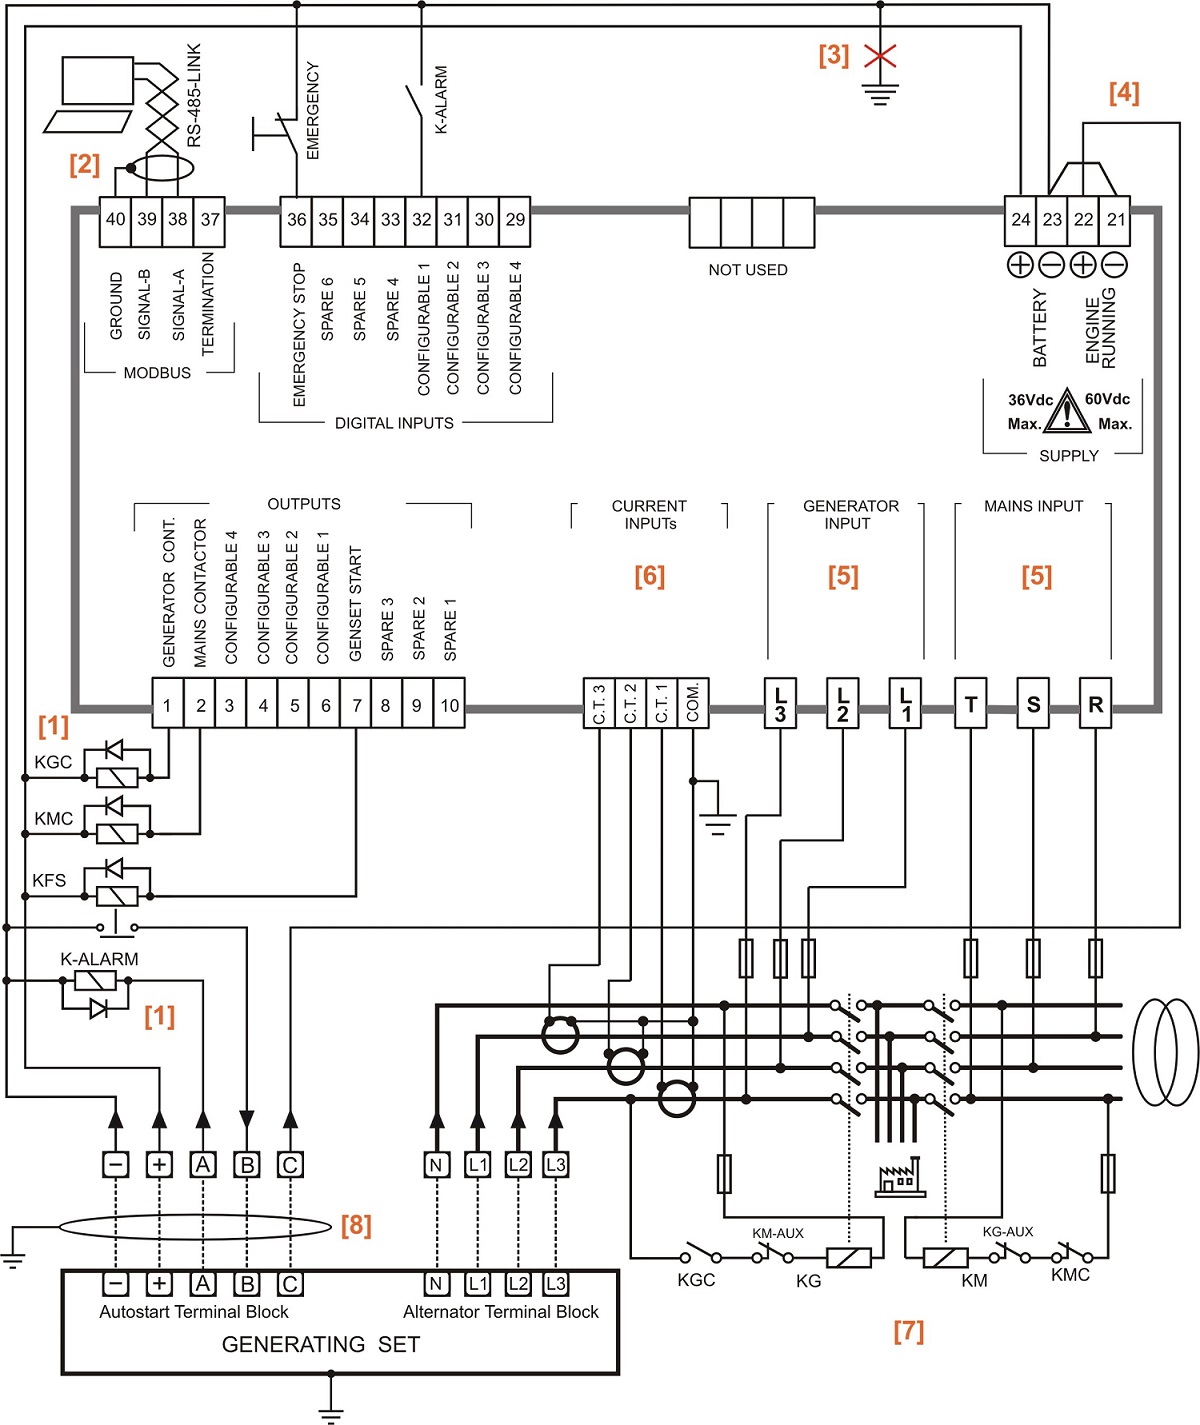 3 subwoofer wiring diagram with Asco Series 300 Wiring Diagram Wiring Diagrams on Topic24514 furthermore Lm324  lifier Circuit Wiring Diagrams furthermore Pioneer Vsx Wiring further Bjt Wiring Diagram besides Asco Series 300 Wiring Diagram Wiring Diagrams.